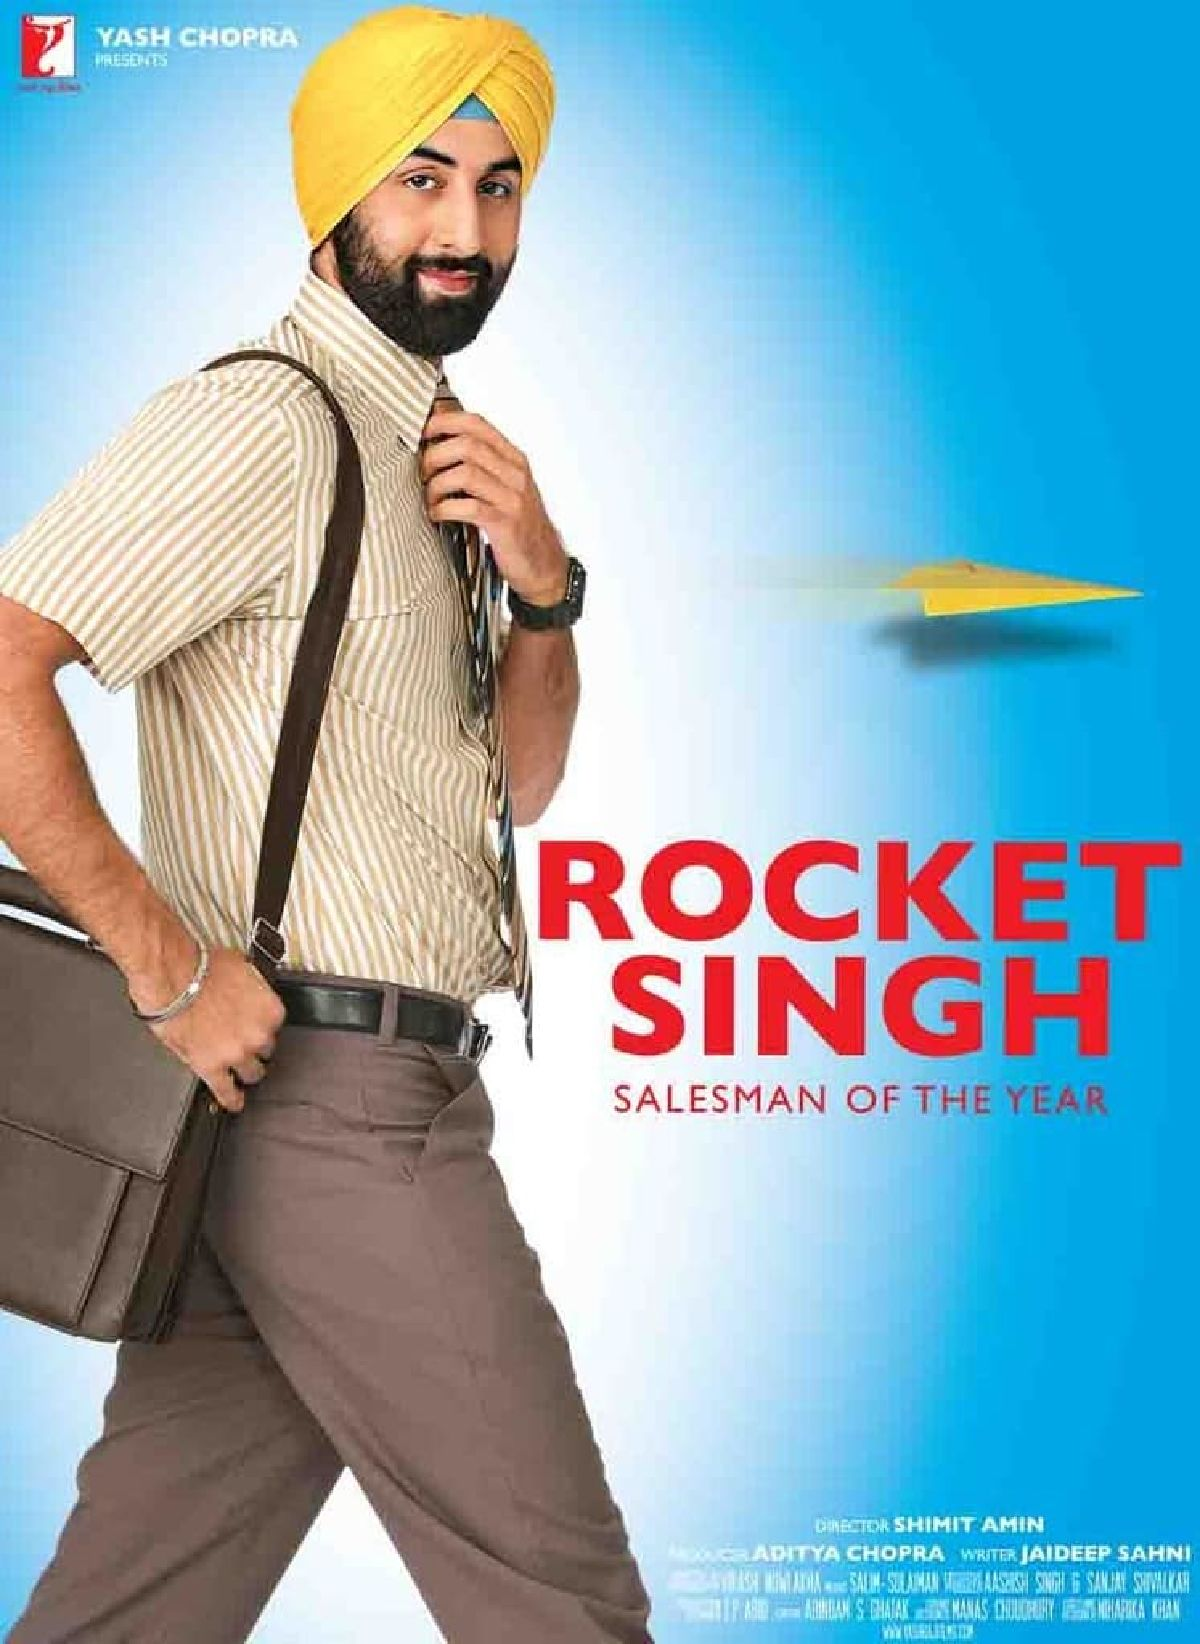 'Rocket Singh: Salesman Of The Year' movie poster